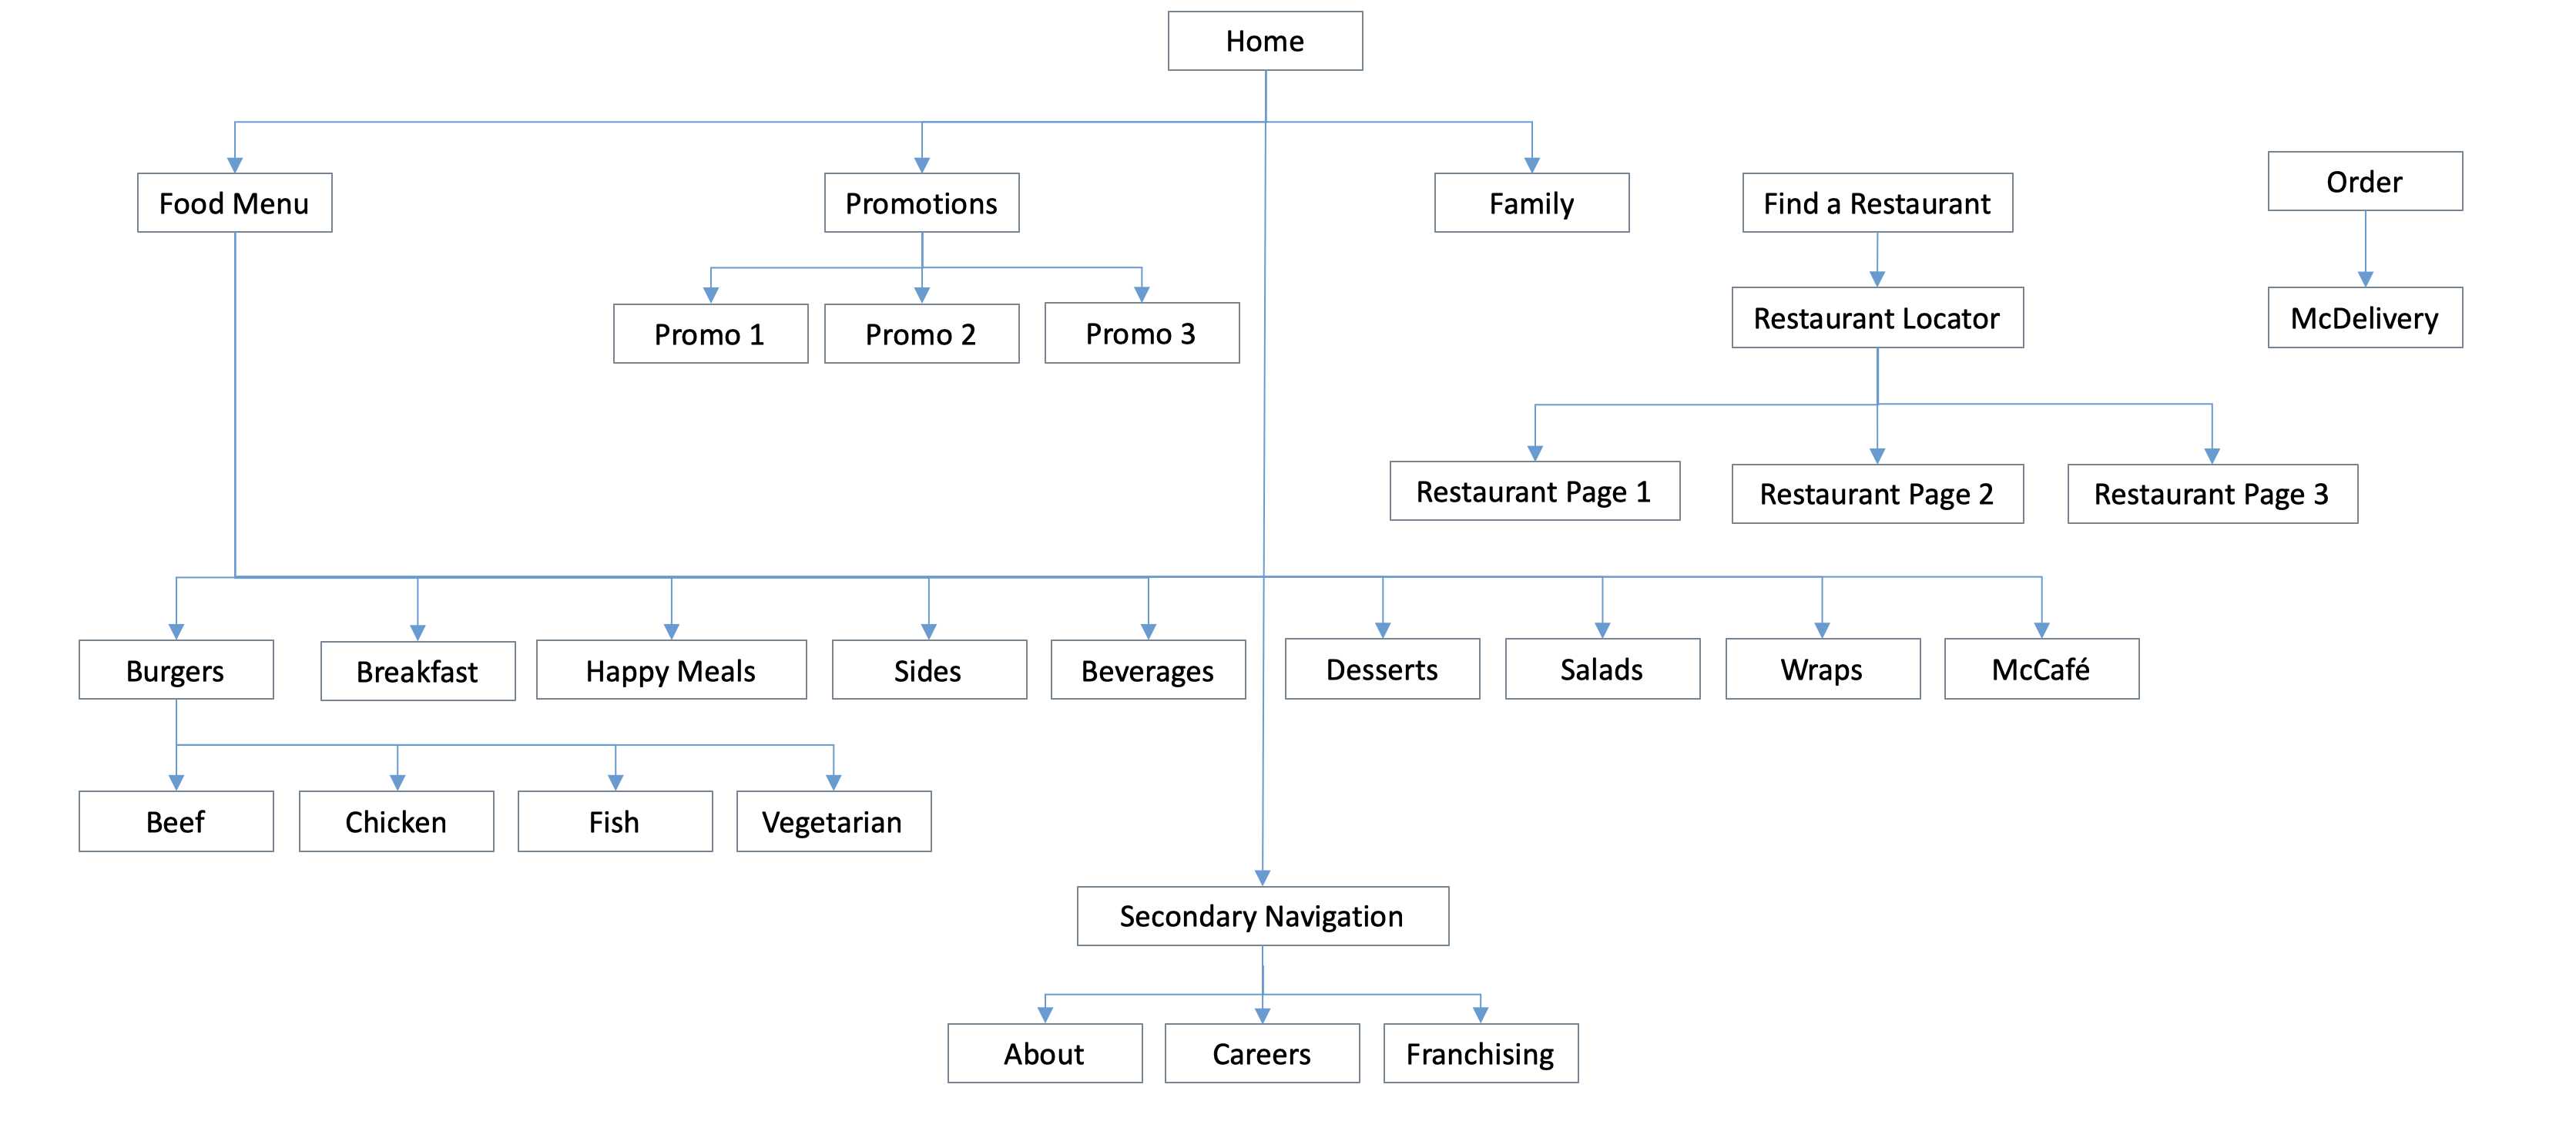 Revised information architecture informed by thorough user and stakeholder research and interviews. This proposed structure more accurately maps the user's mental model for what they expect to be able to do and see on the site.